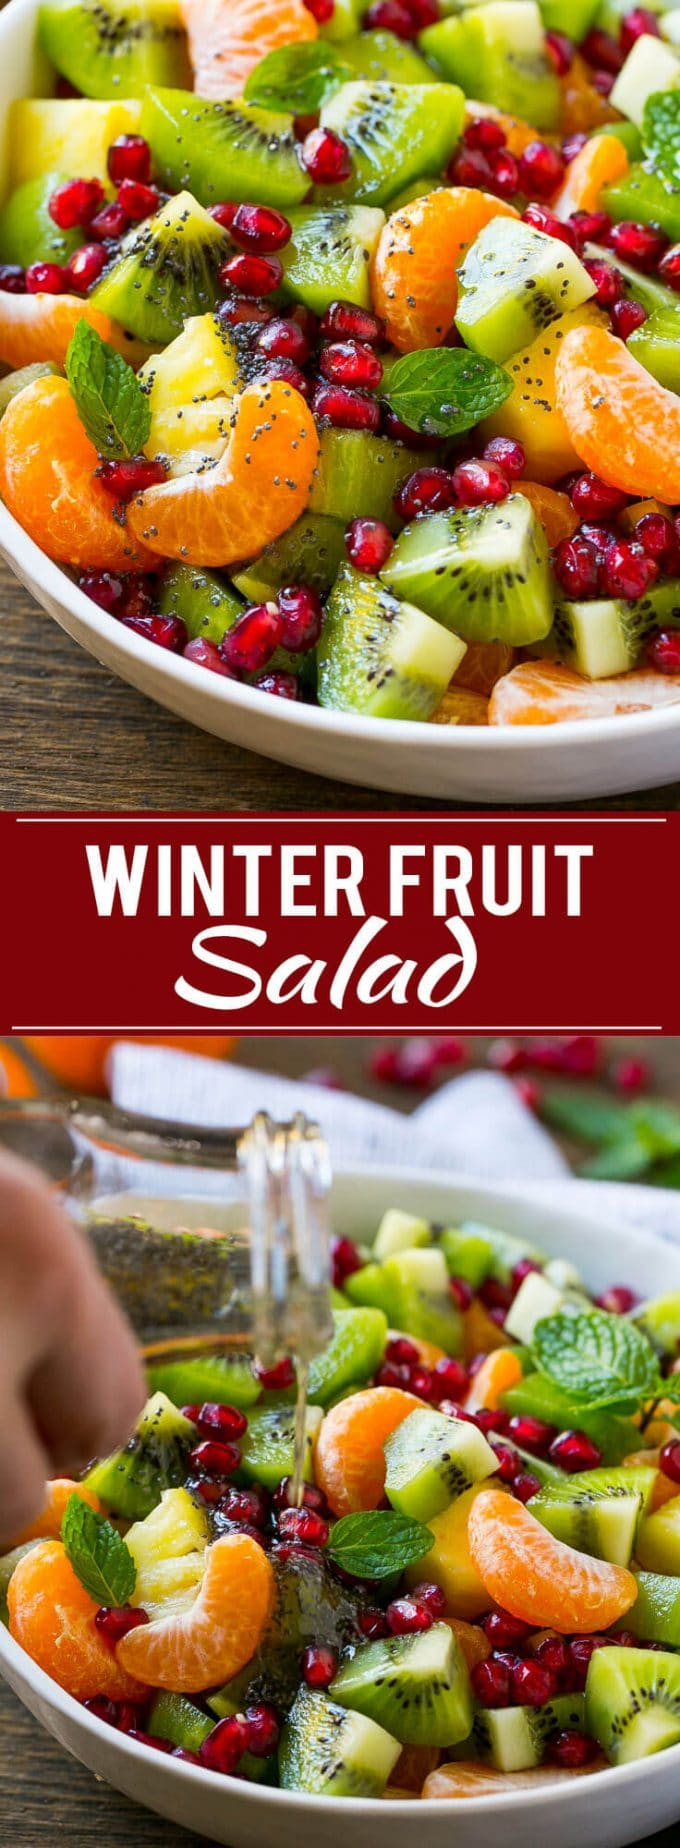 Winter Fruit Salad | Fruit Salad | Fruit Recipe | Healthy Fruit Recipe | Pomegranate Recipe | Kiwi Recipe | Orange Recipe | Pineapple Recipe